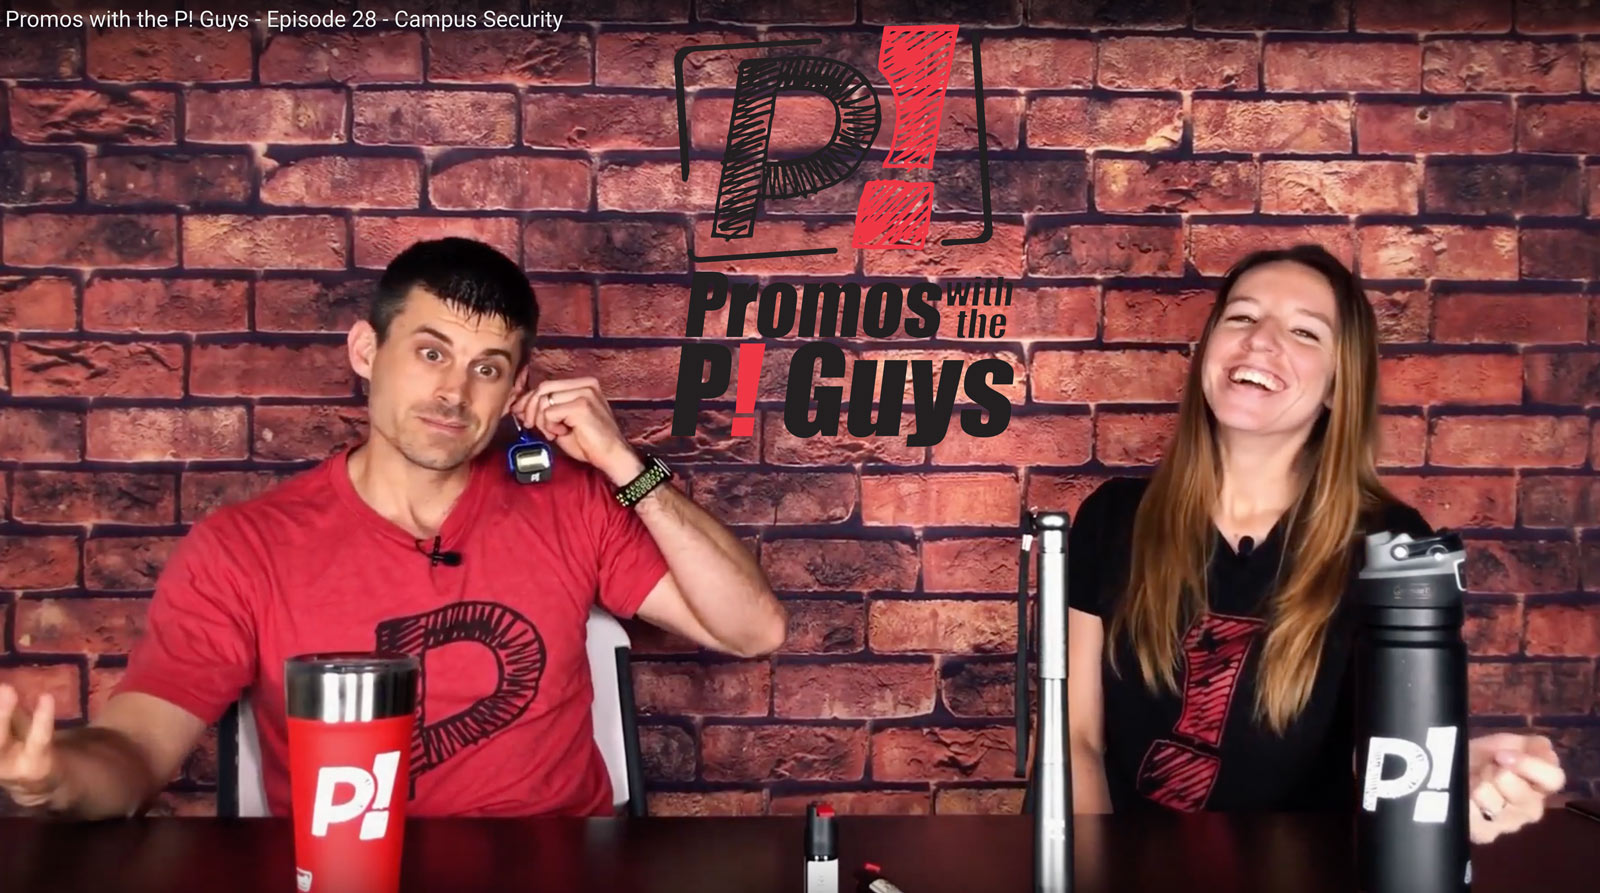 Promos with the P! Guys - Episode 28 - Campus Safety Items